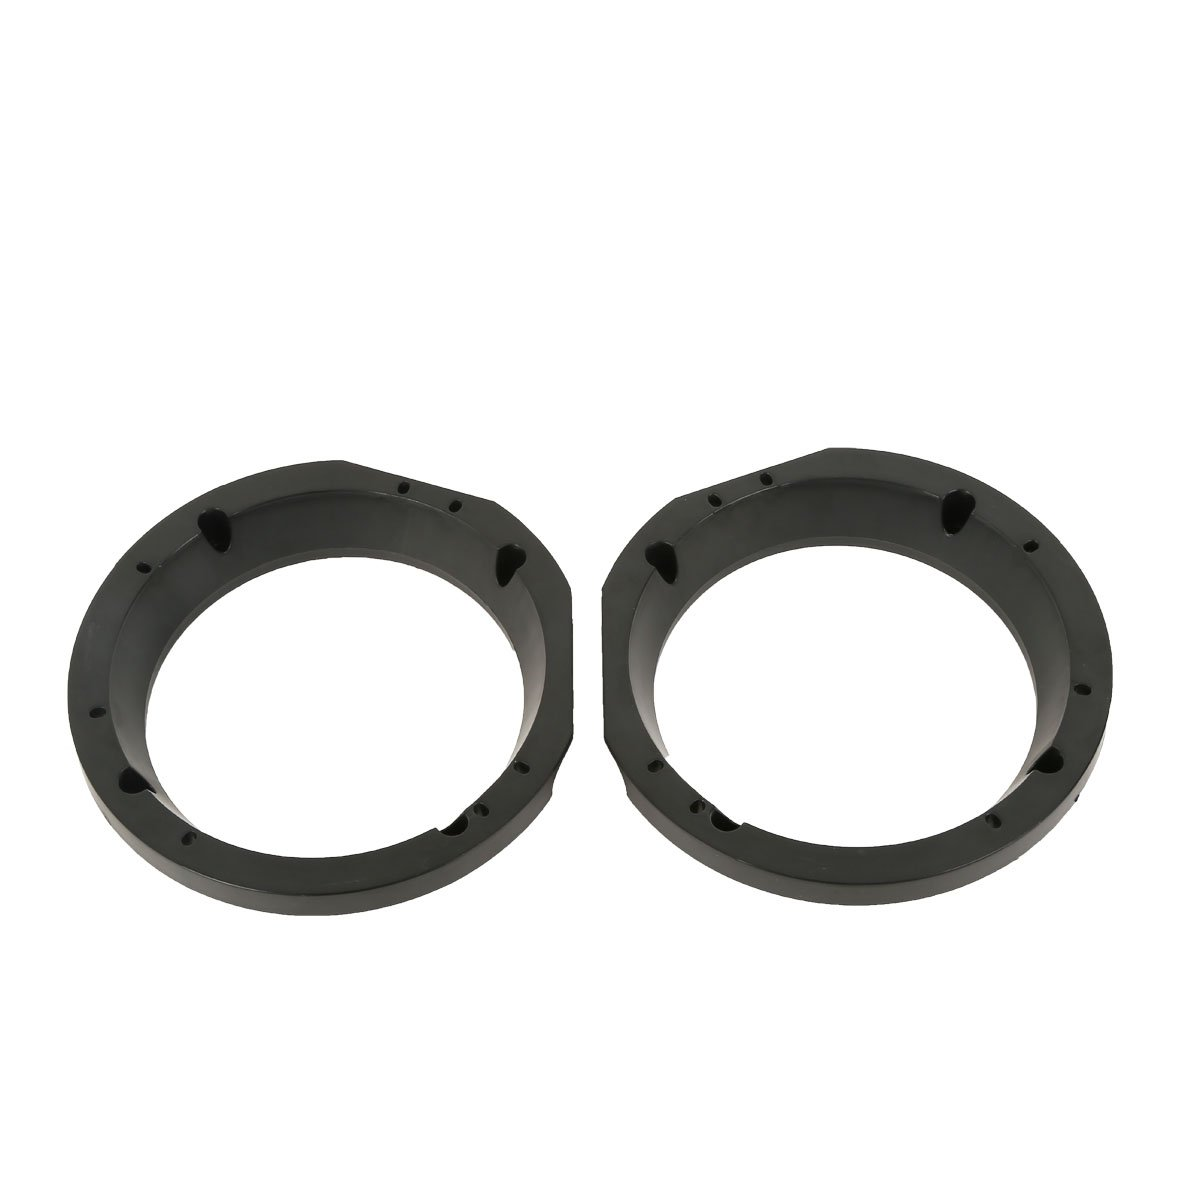 XFMT 5.25 TO 6.5 Speaker Adapter Ring 5.25'' Cutout For Harley Davidson Touring 1998-2013